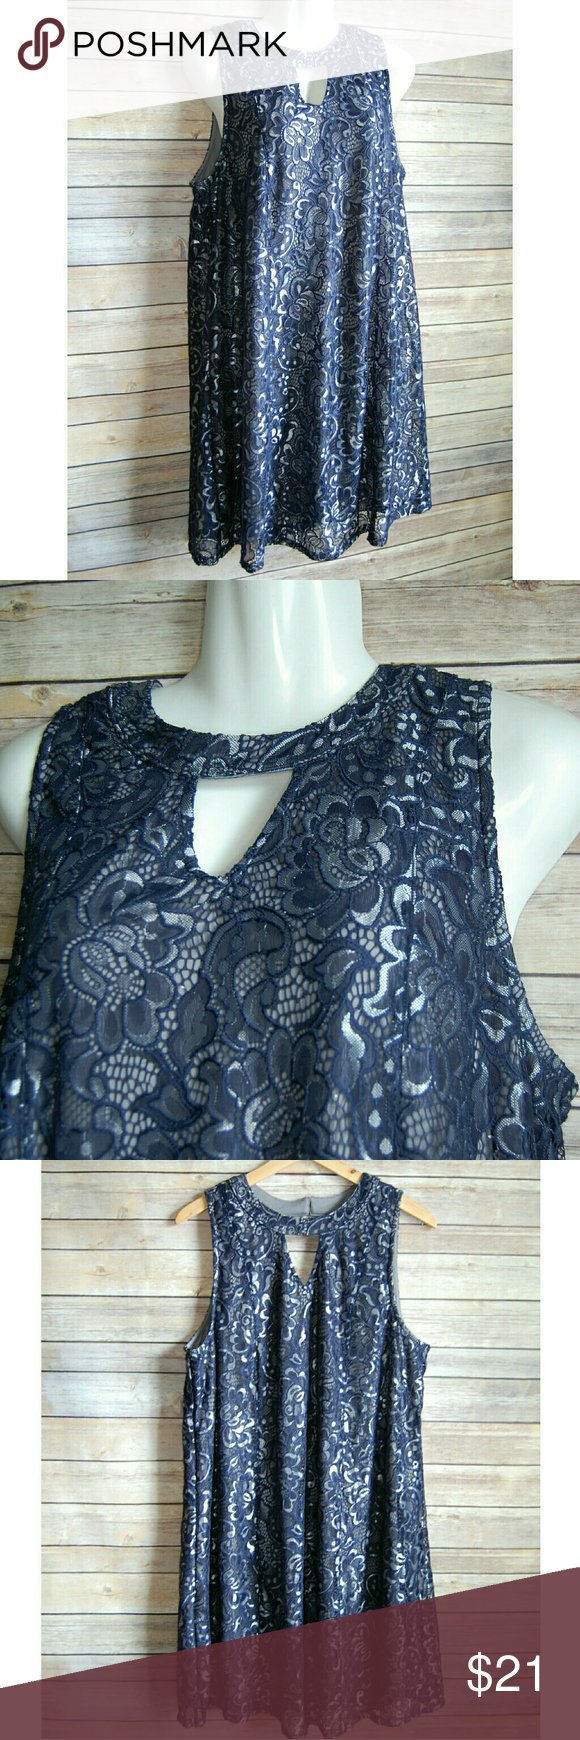 Xl short dress silver blue navy blue conditioning and navy